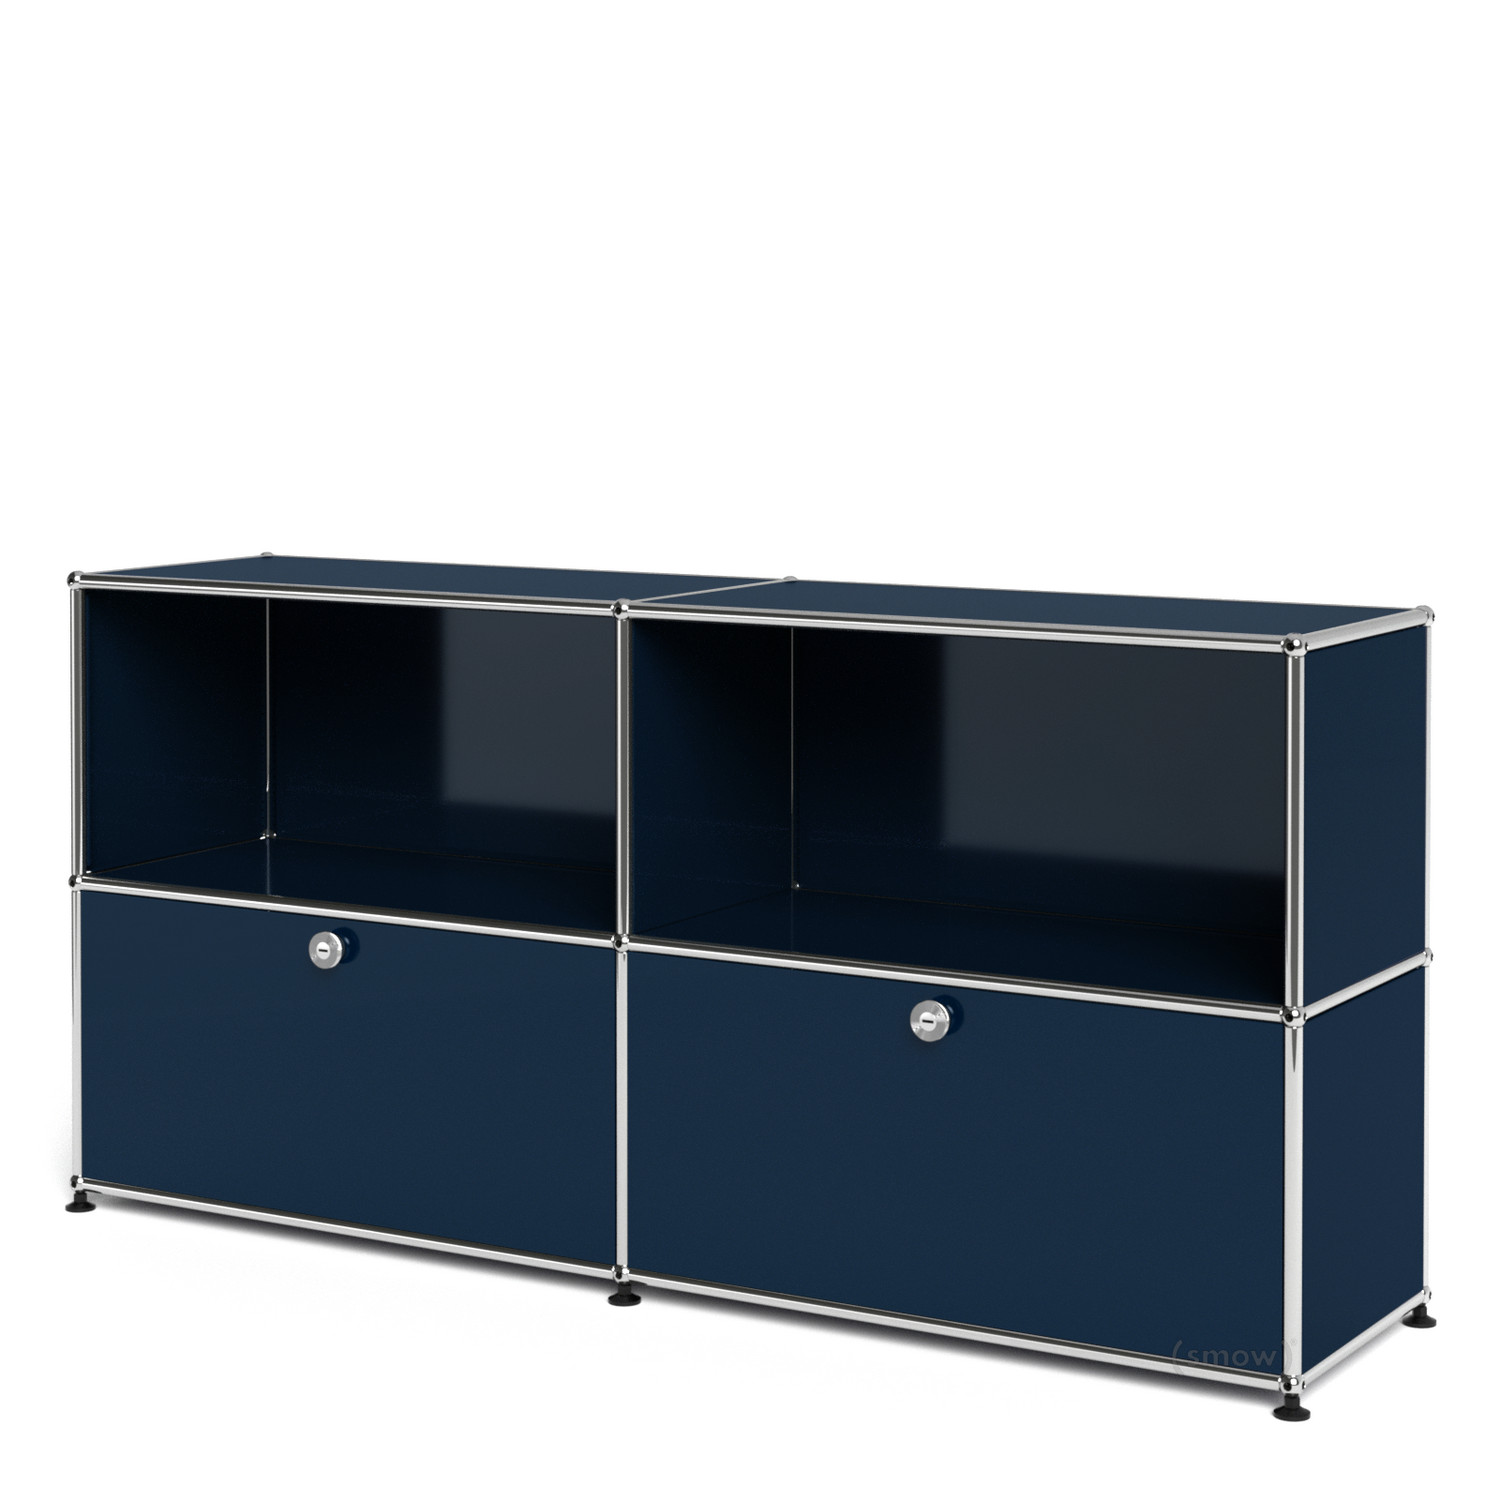 usm haller sideboard l with 2 drop down doors steel blue ral 5011 by fritz haller paul. Black Bedroom Furniture Sets. Home Design Ideas